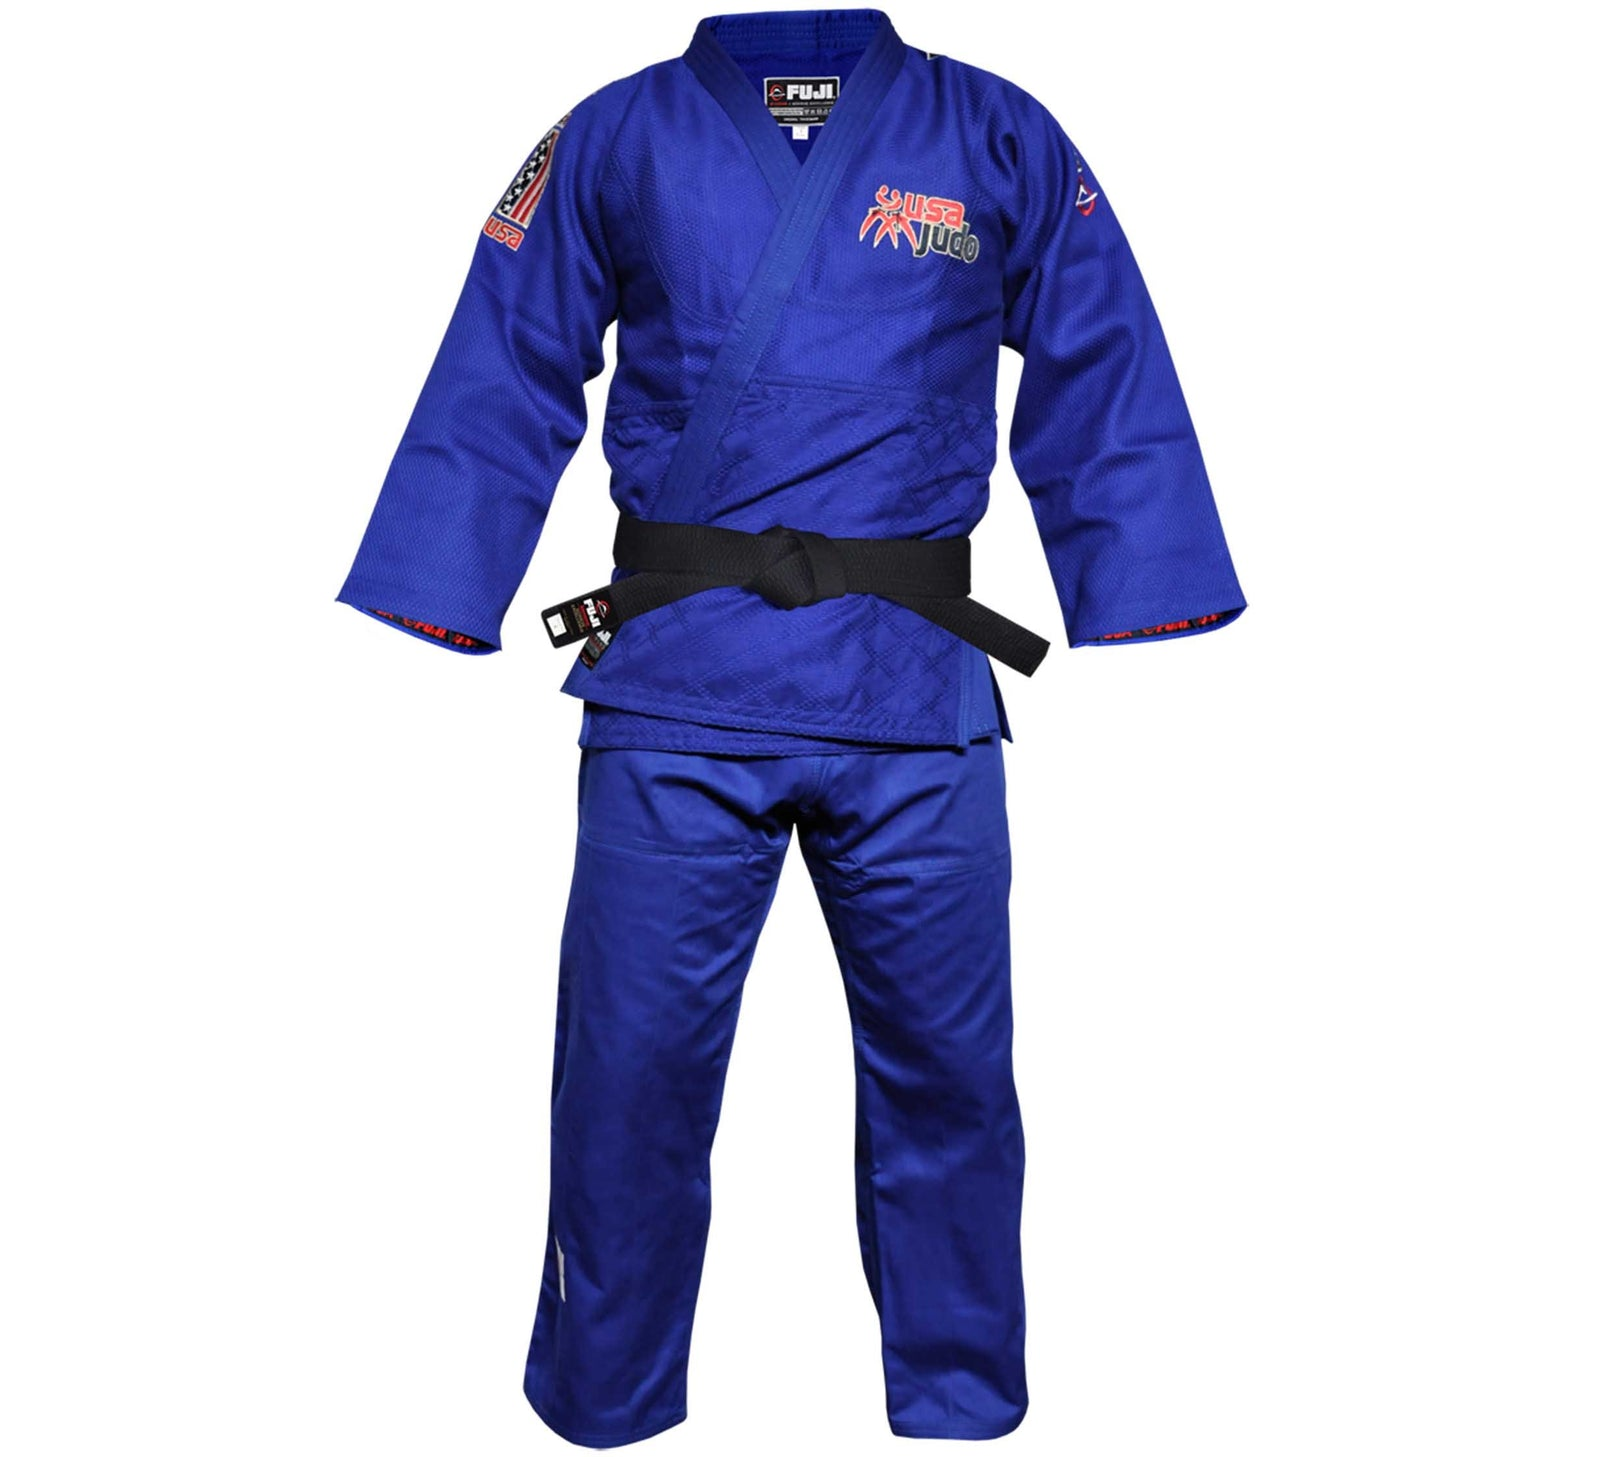 USA Judo Single Weave Gi